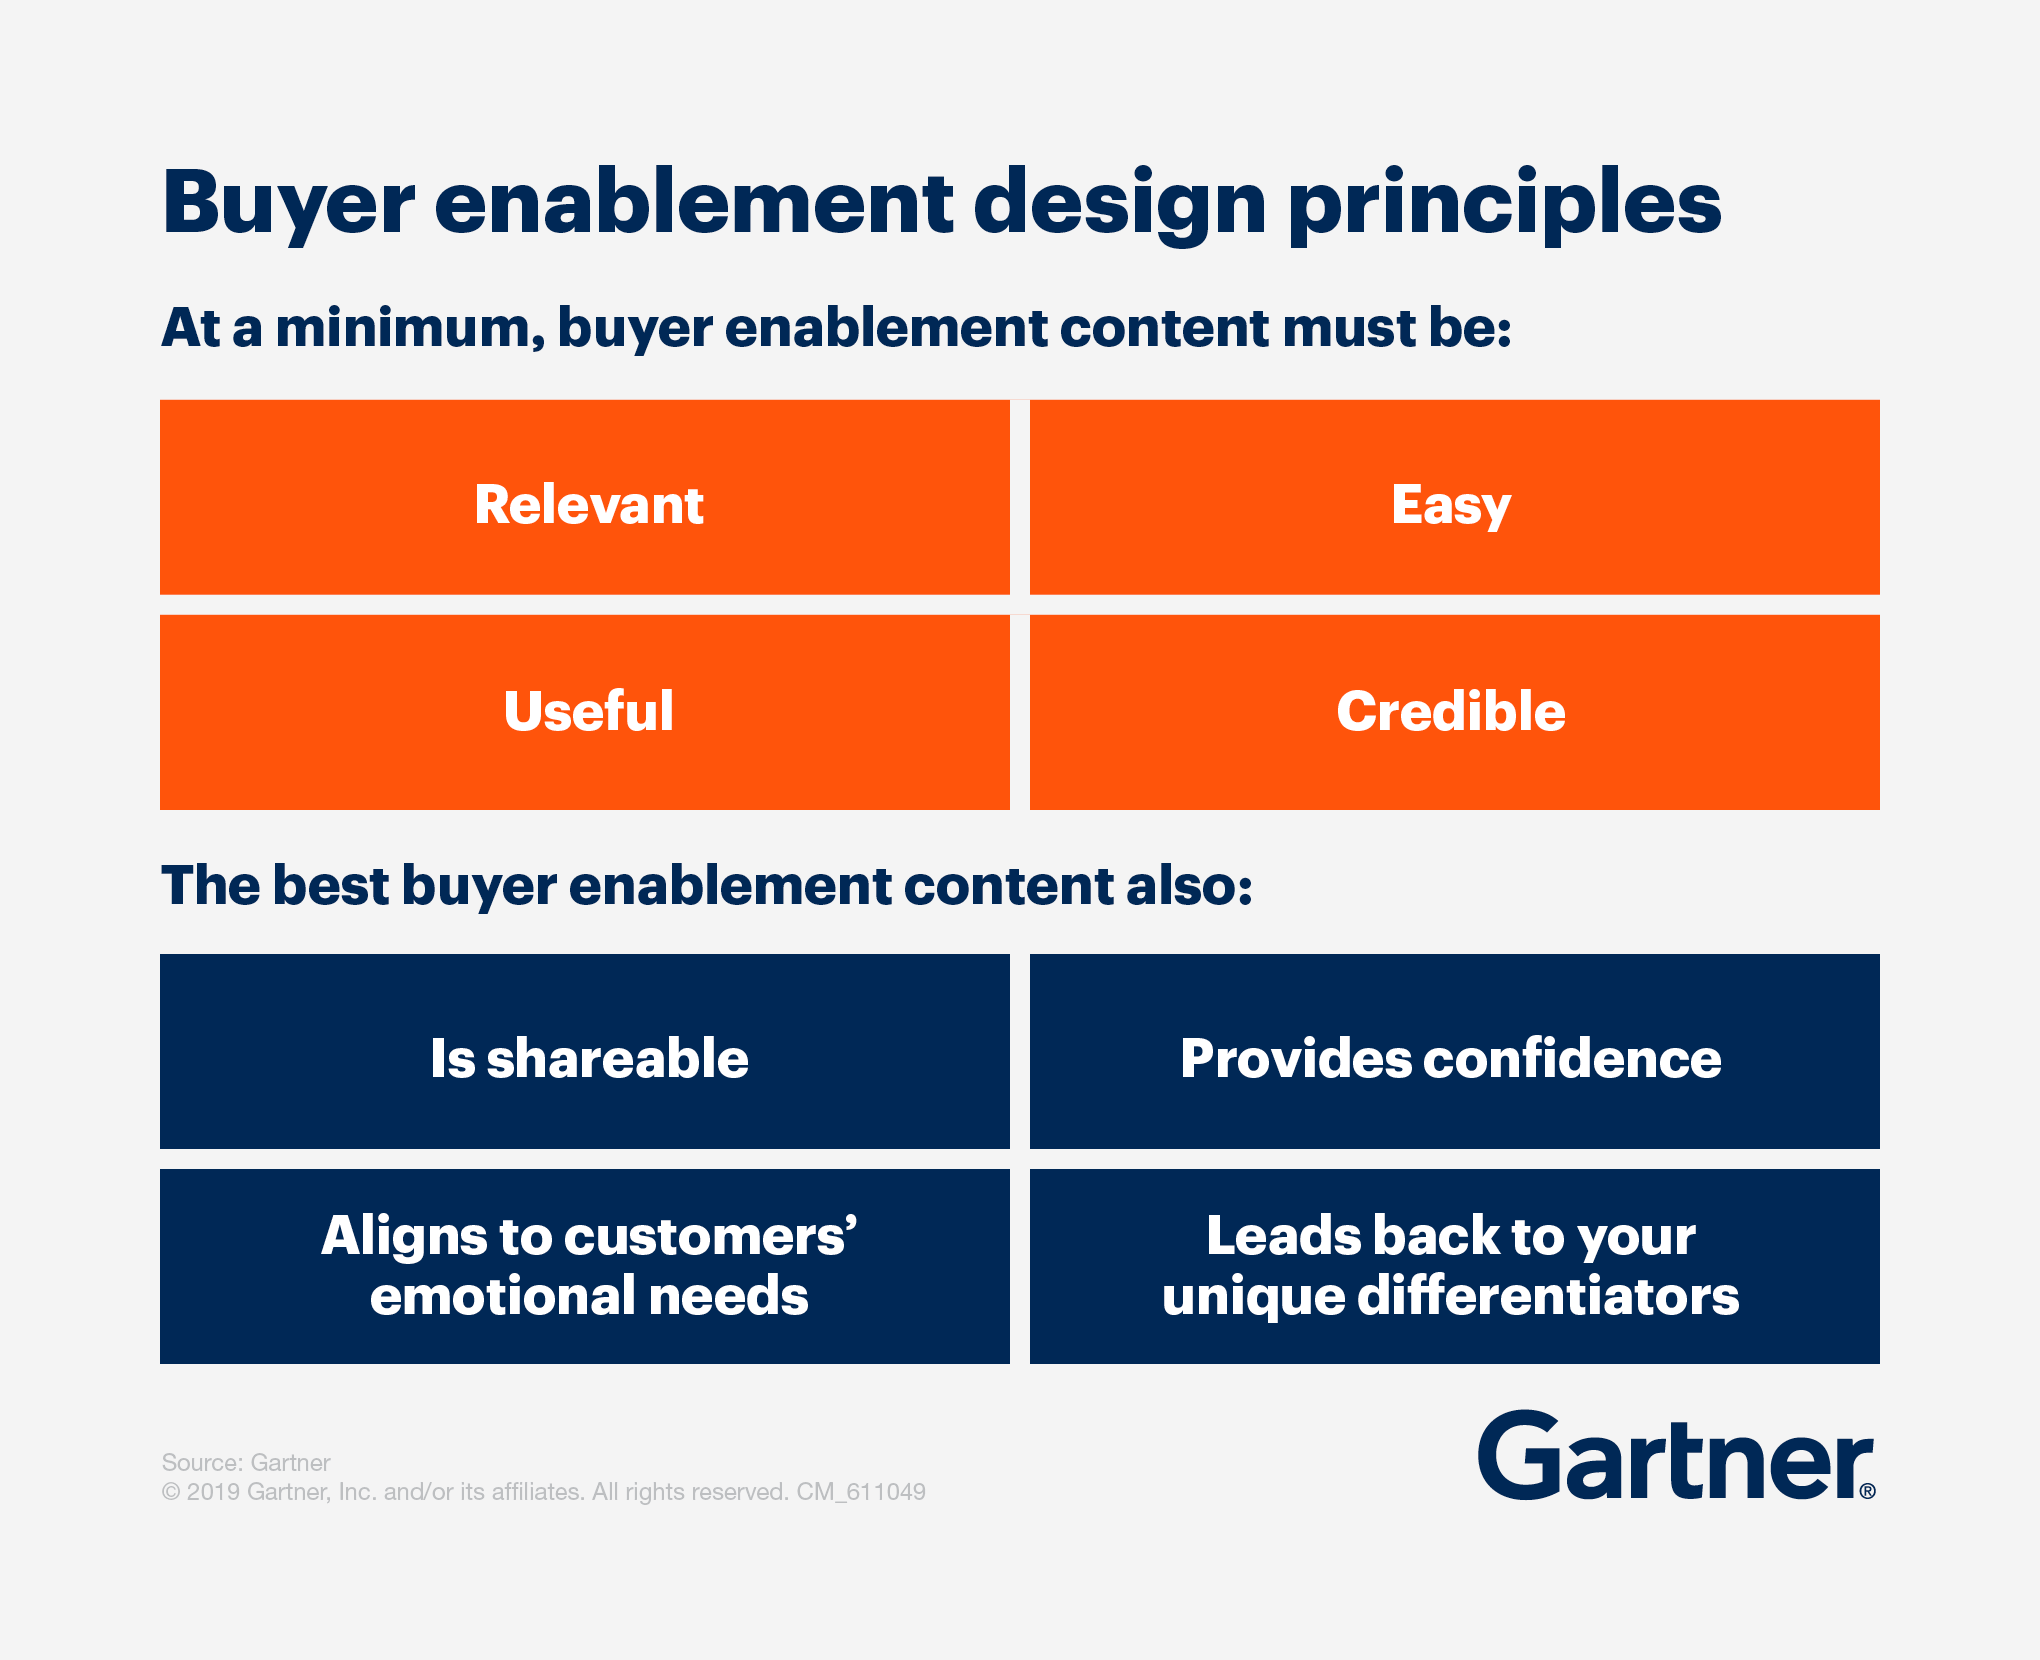 Buyer enablement design principles